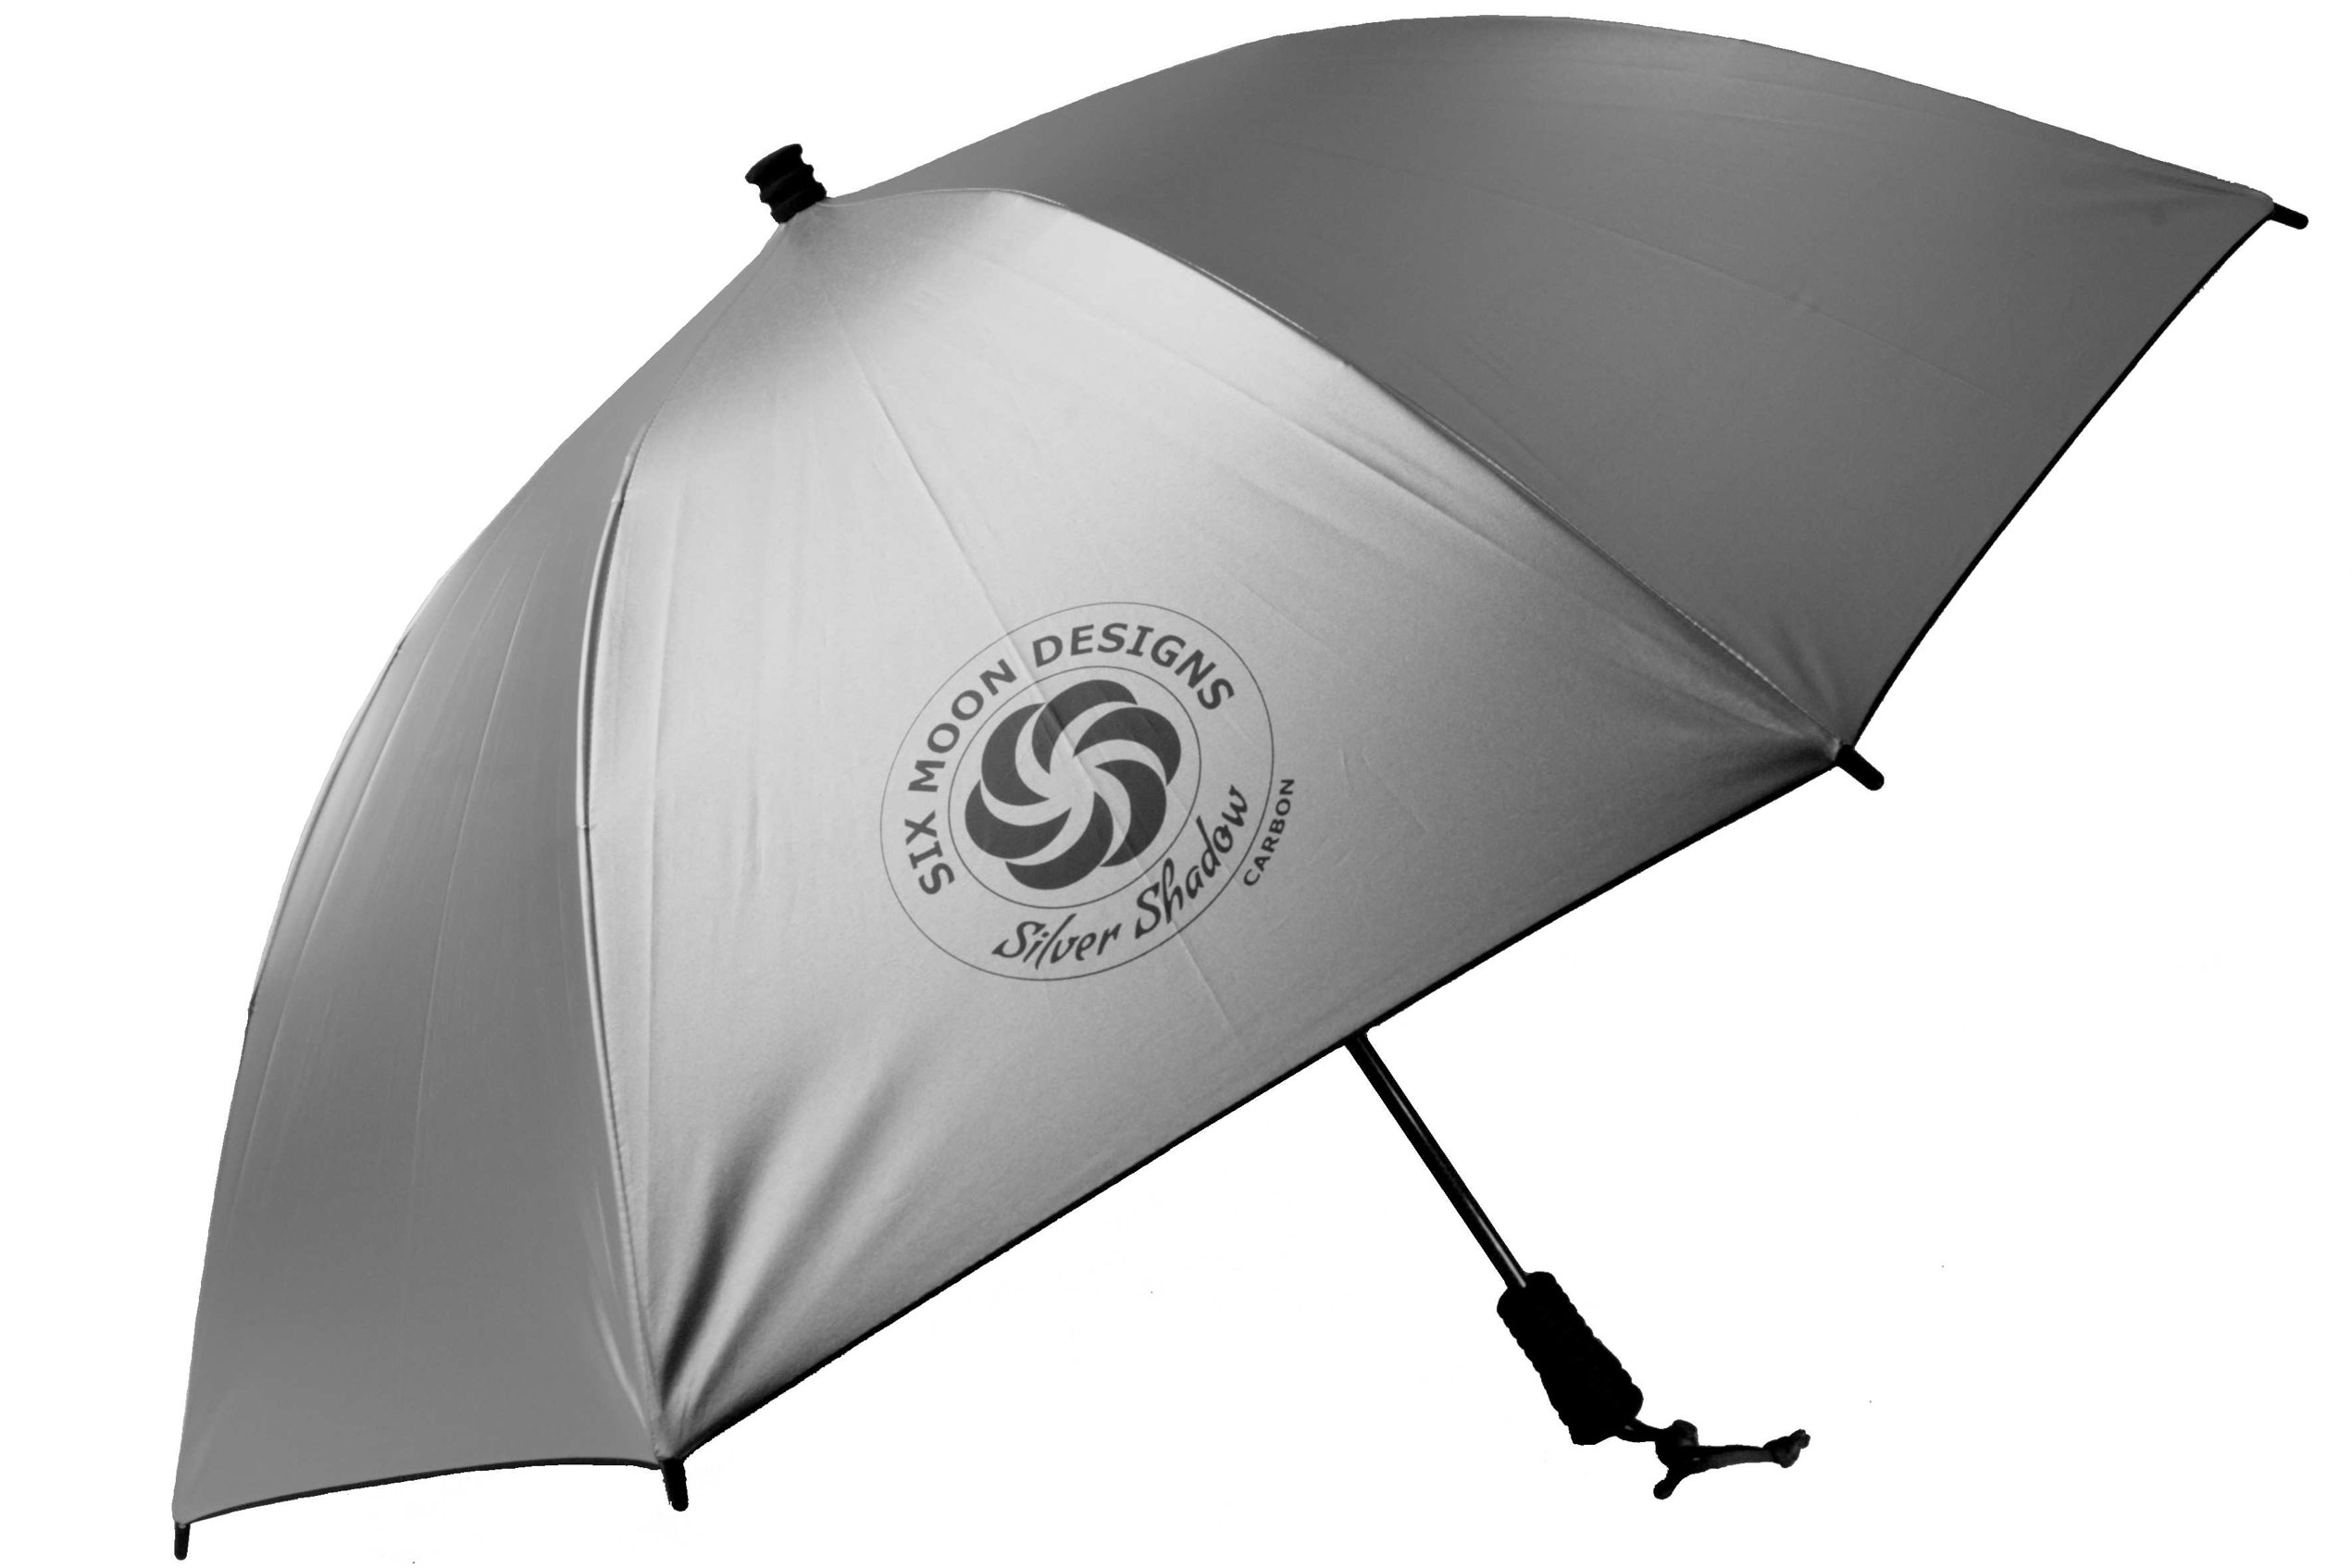 Six Moon Designs Silver Shadow Carbon hiking umbrella